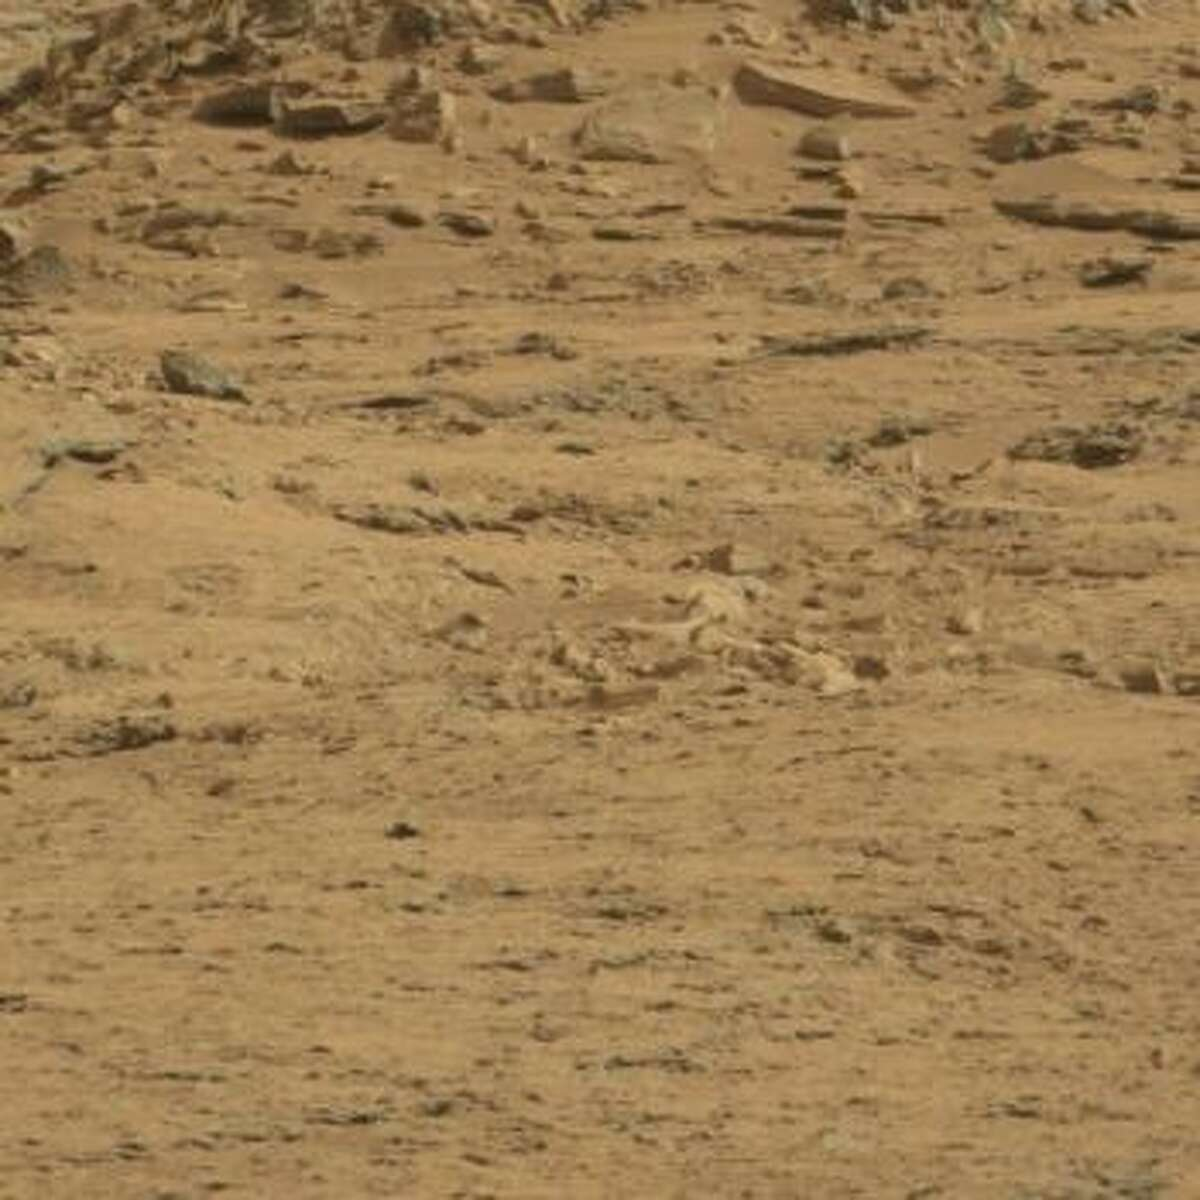 An online group has purportedly spotted a coffin on Mars. It's in the bottom half of the frame, near the center.